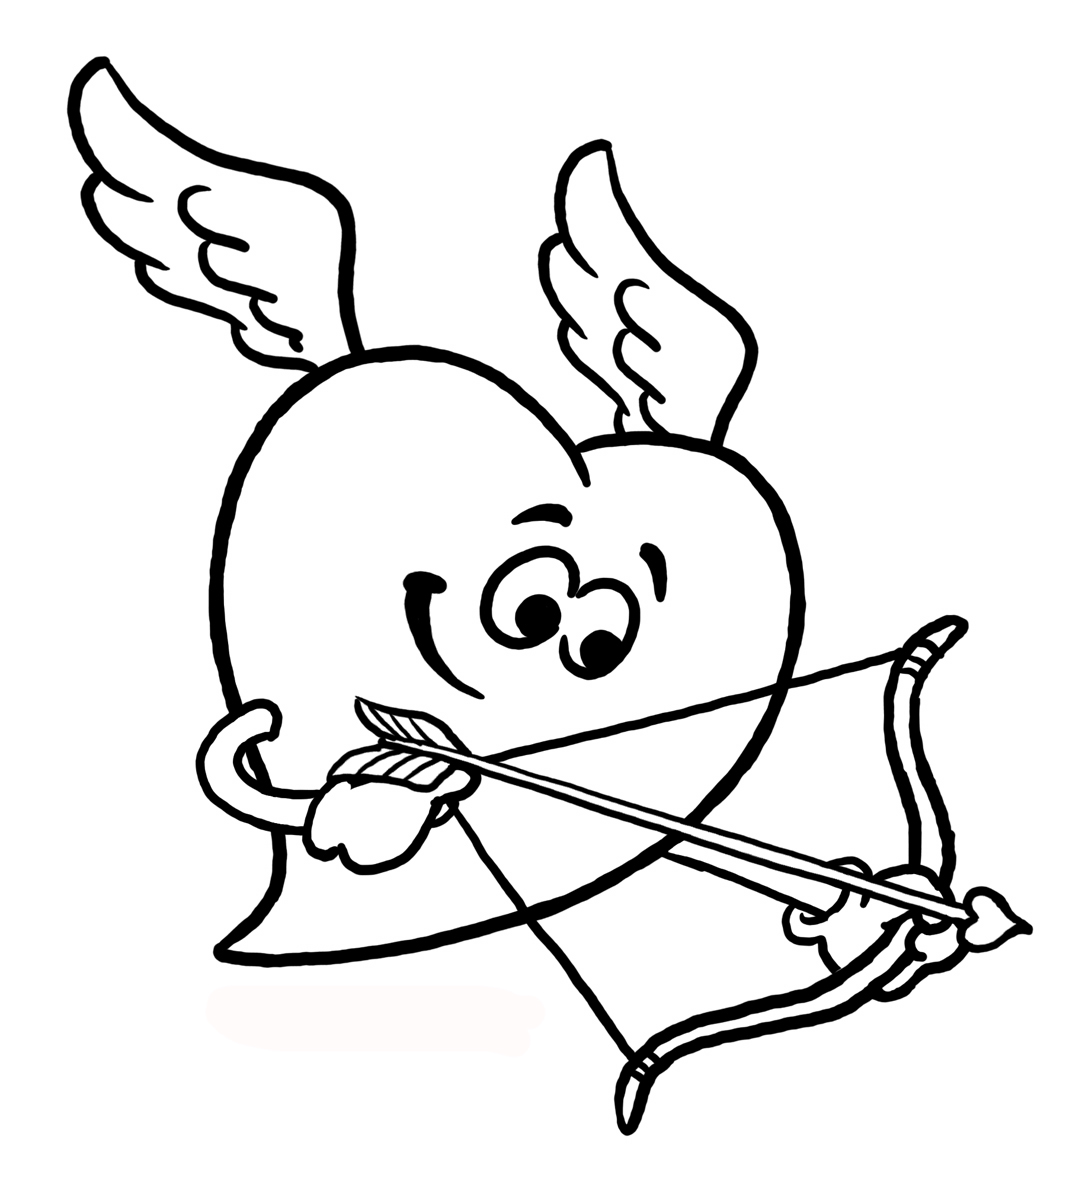 coloring pages cupid - photo#27